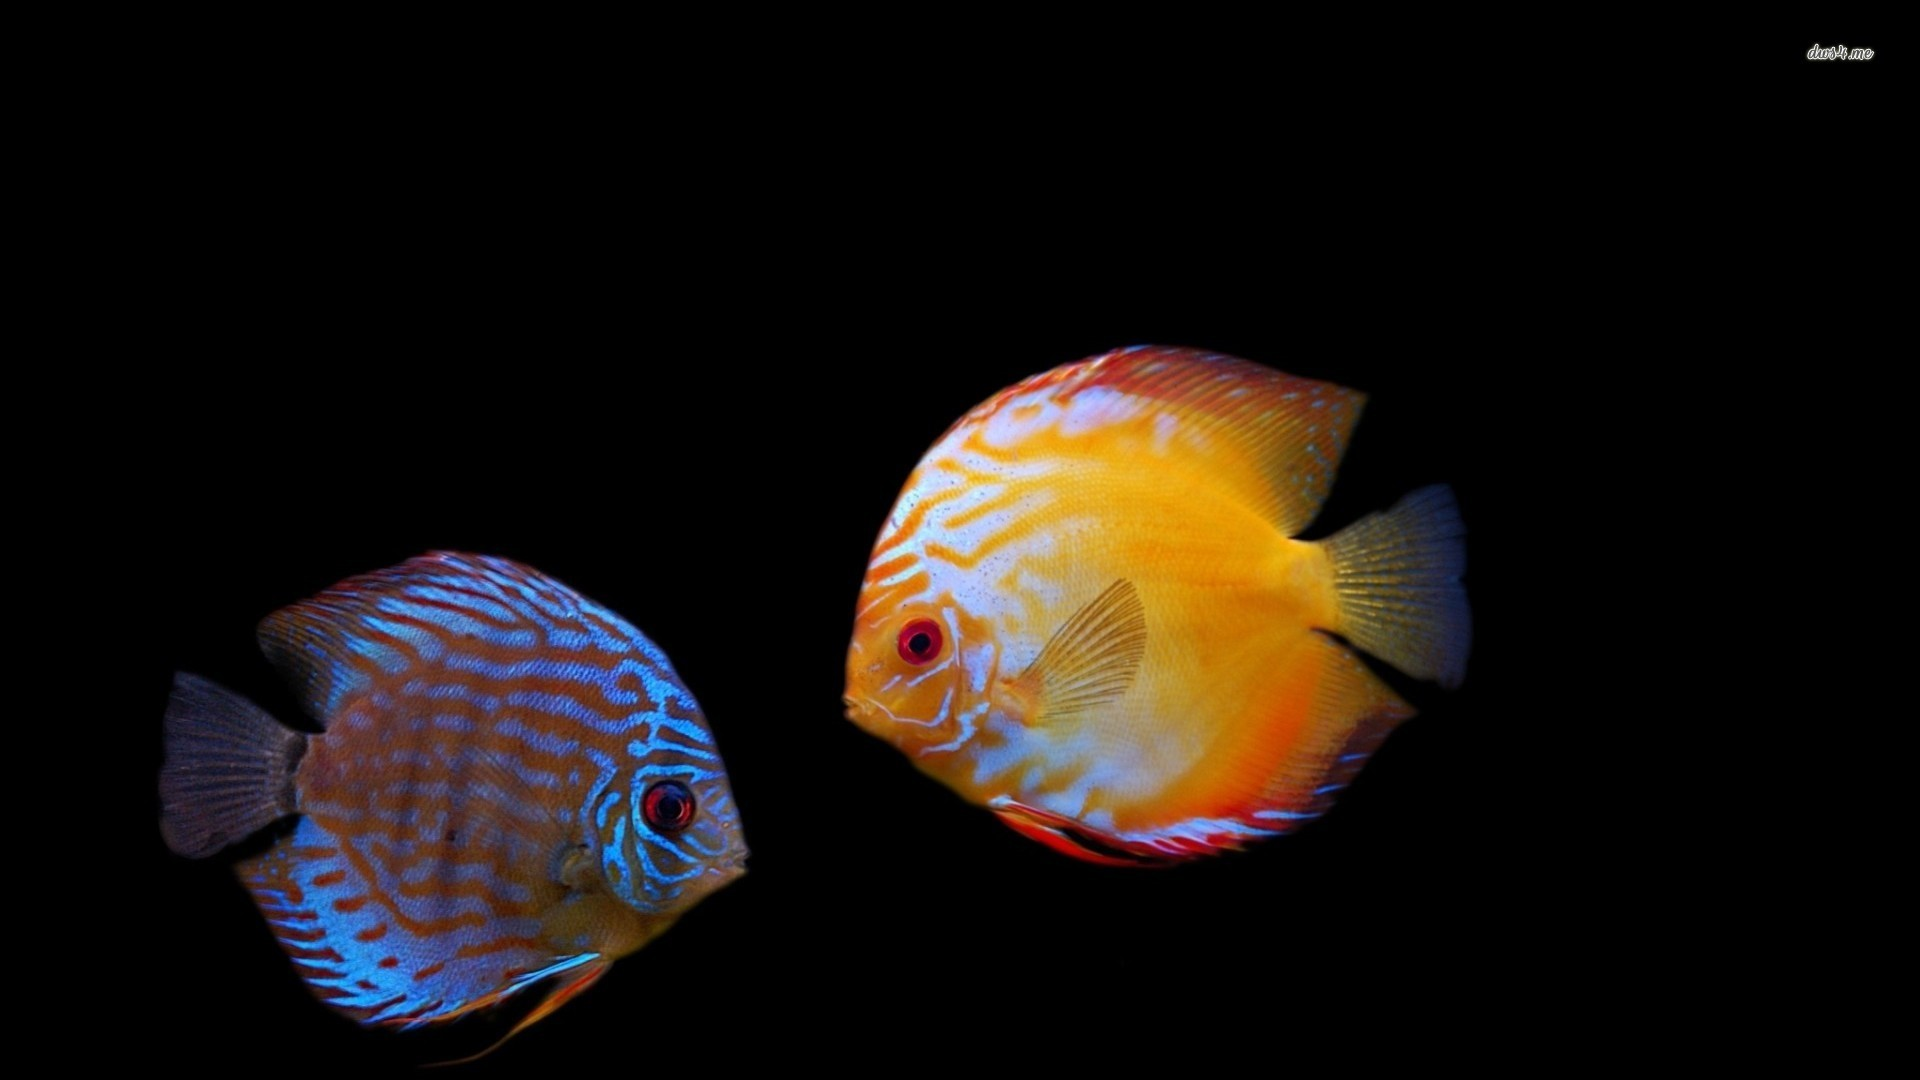 Res: 1920x1080, Fish Wallpapers For Desktop Free Download FRT | Pretty Wallpapers HD